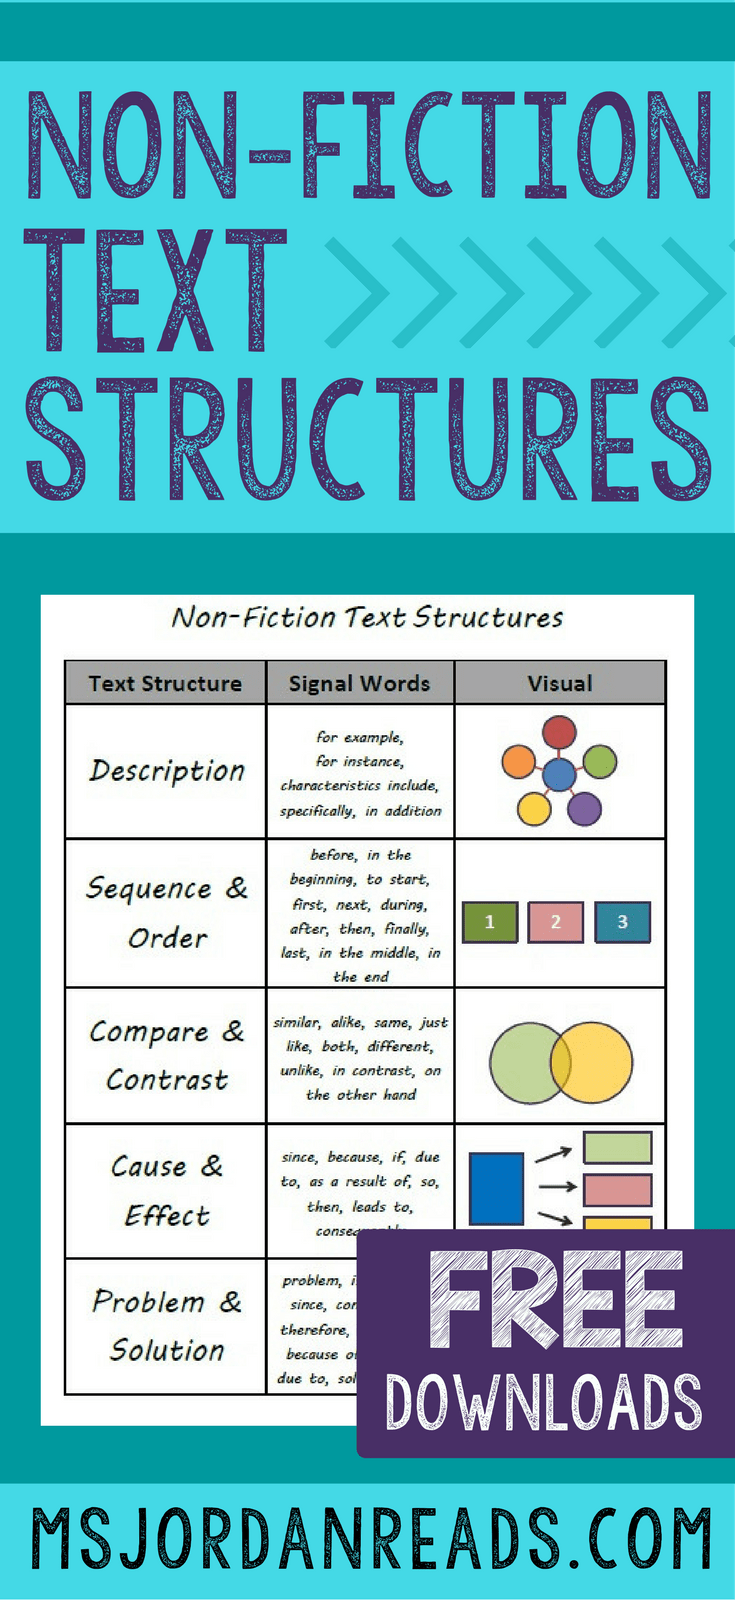 medium resolution of Non-Fiction Text Structures - MsJordanReads